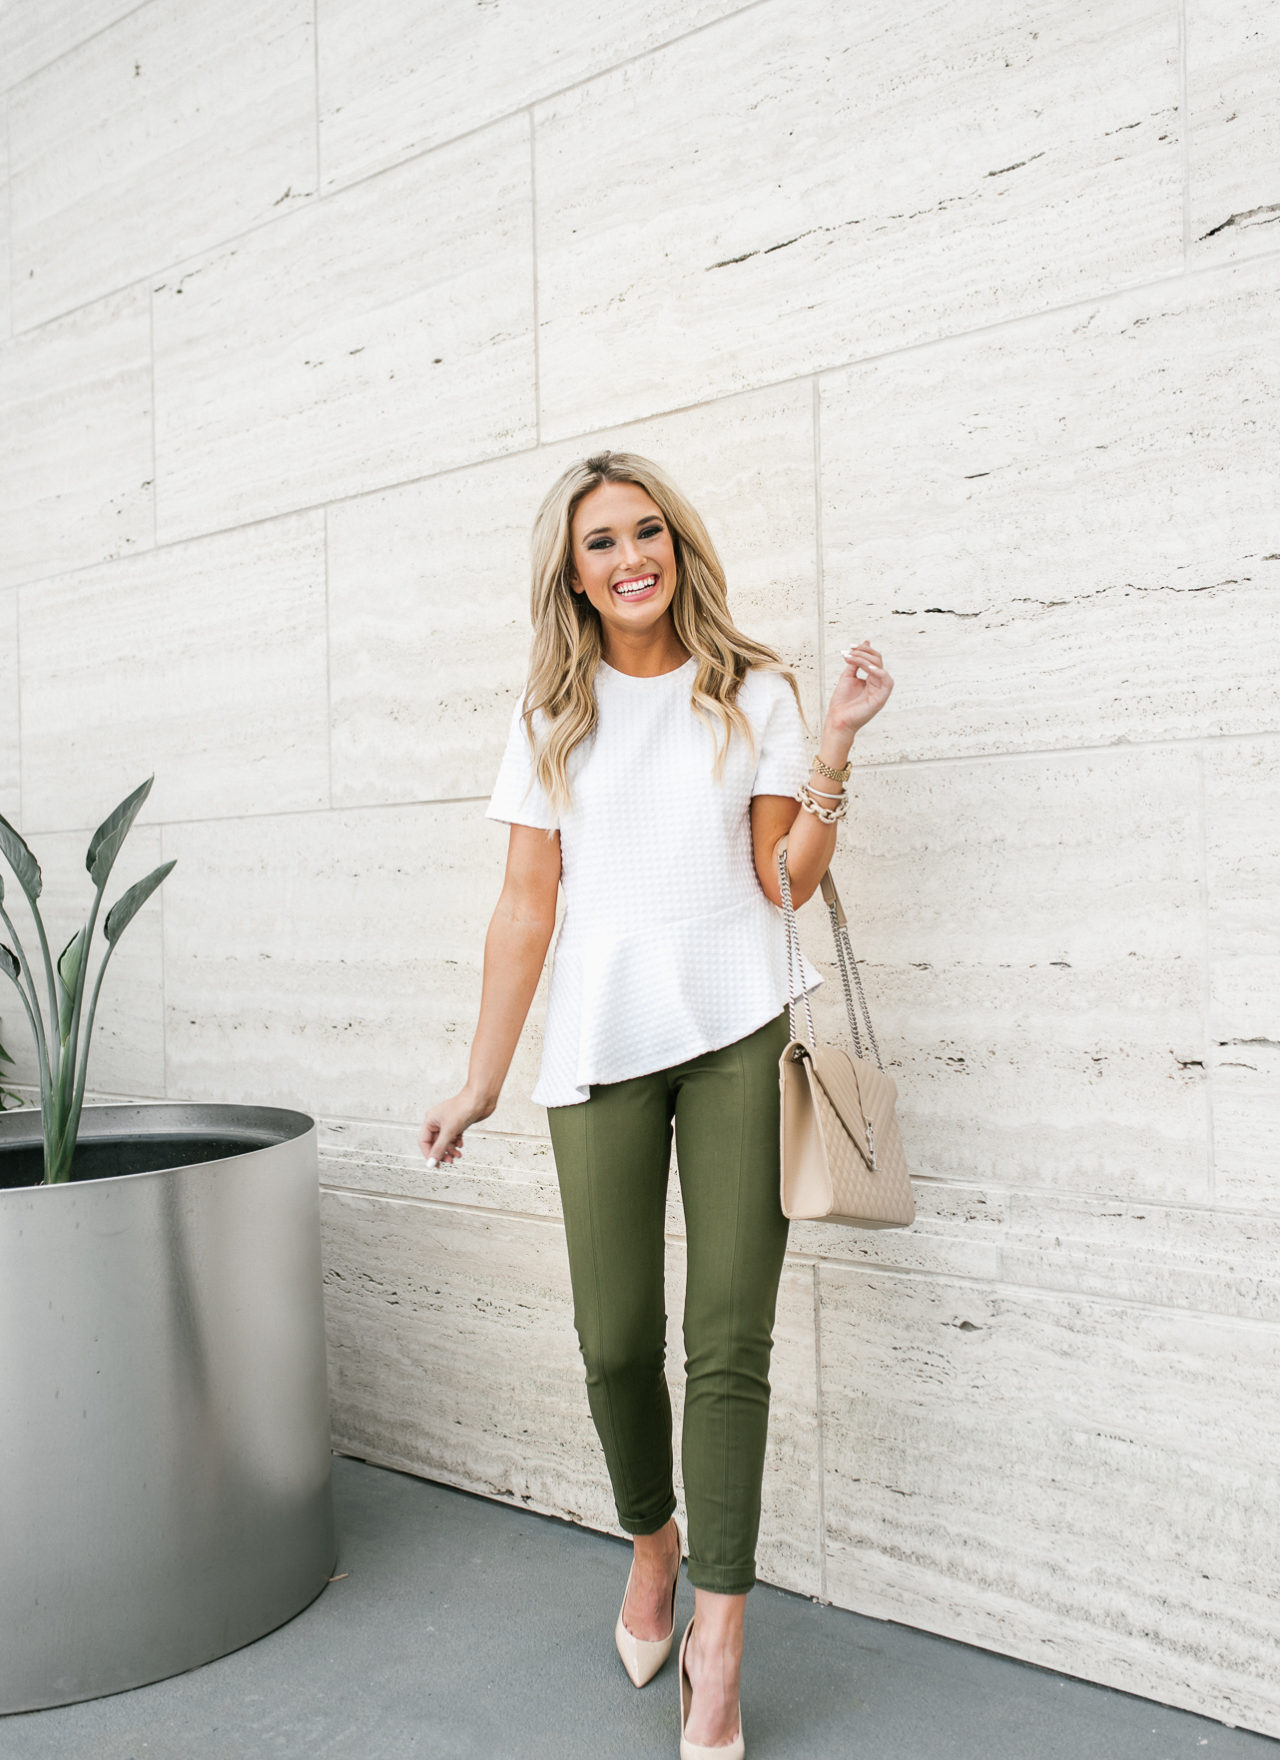 Work Wear to Casual Look